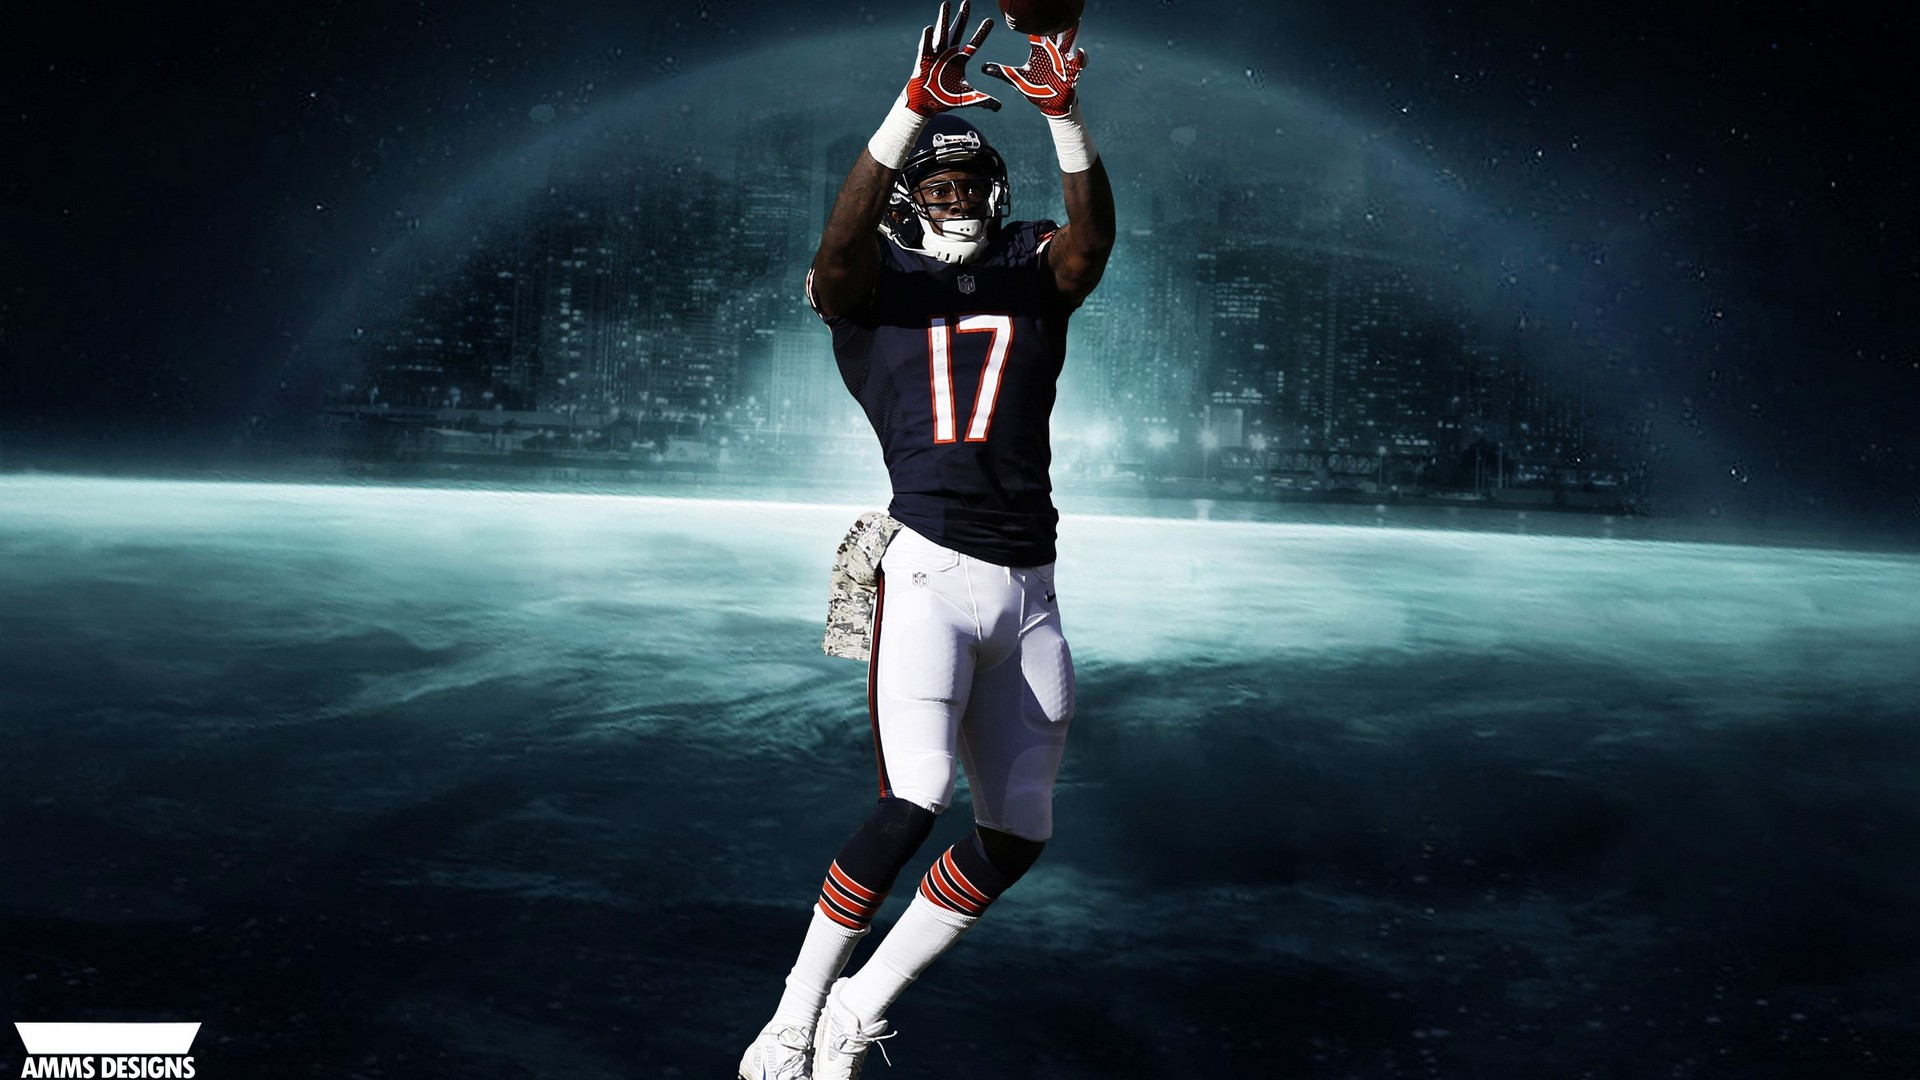 Chicago Bears Nfl Wallpaper Hd With High-resolution - Chicago Bears Iphone Wallpaper Hd , HD Wallpaper & Backgrounds